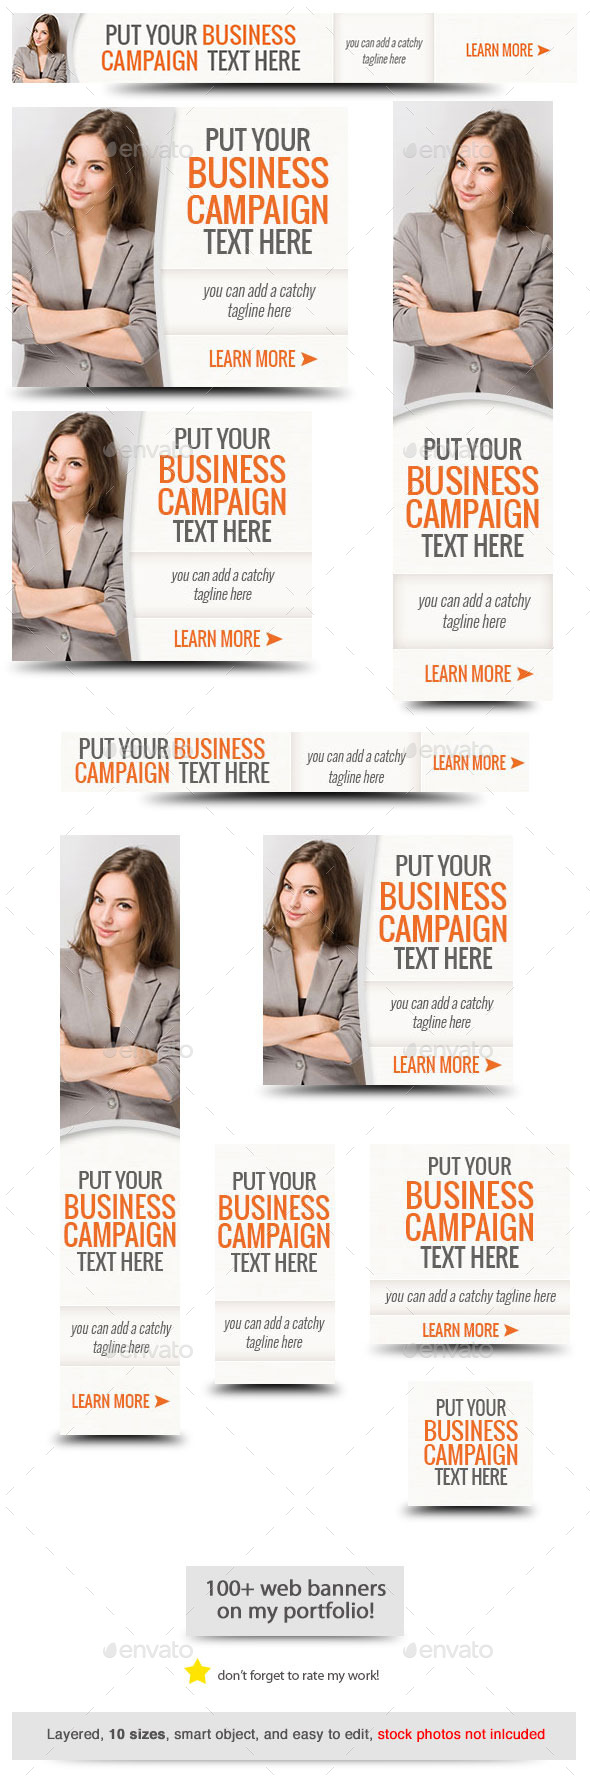 Corporate Web Banner Design Template 53 - Banners & Ads Web Elements